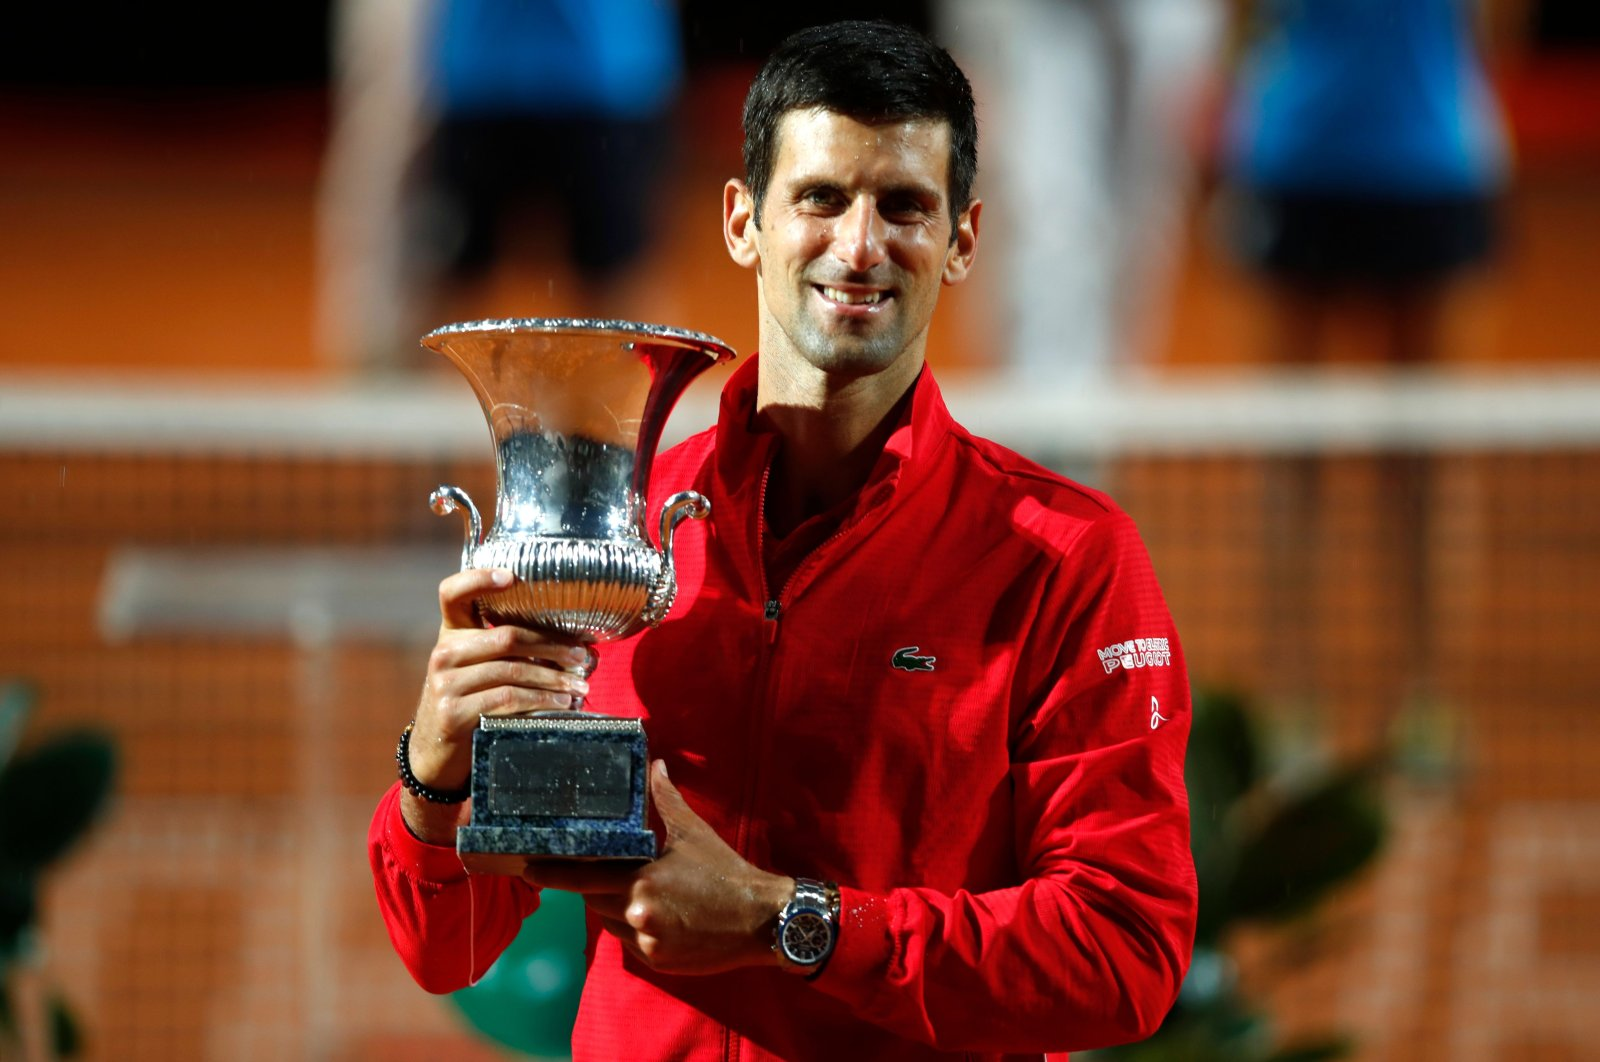 Novak Djokovic of Serbia poses with his trophy after winning the final match of the Men's Italian Open against Argentina's Diego Schwartzman at Foro Italico, in Rome, Italy, Sept. 21, 2020. (AFP Photo)